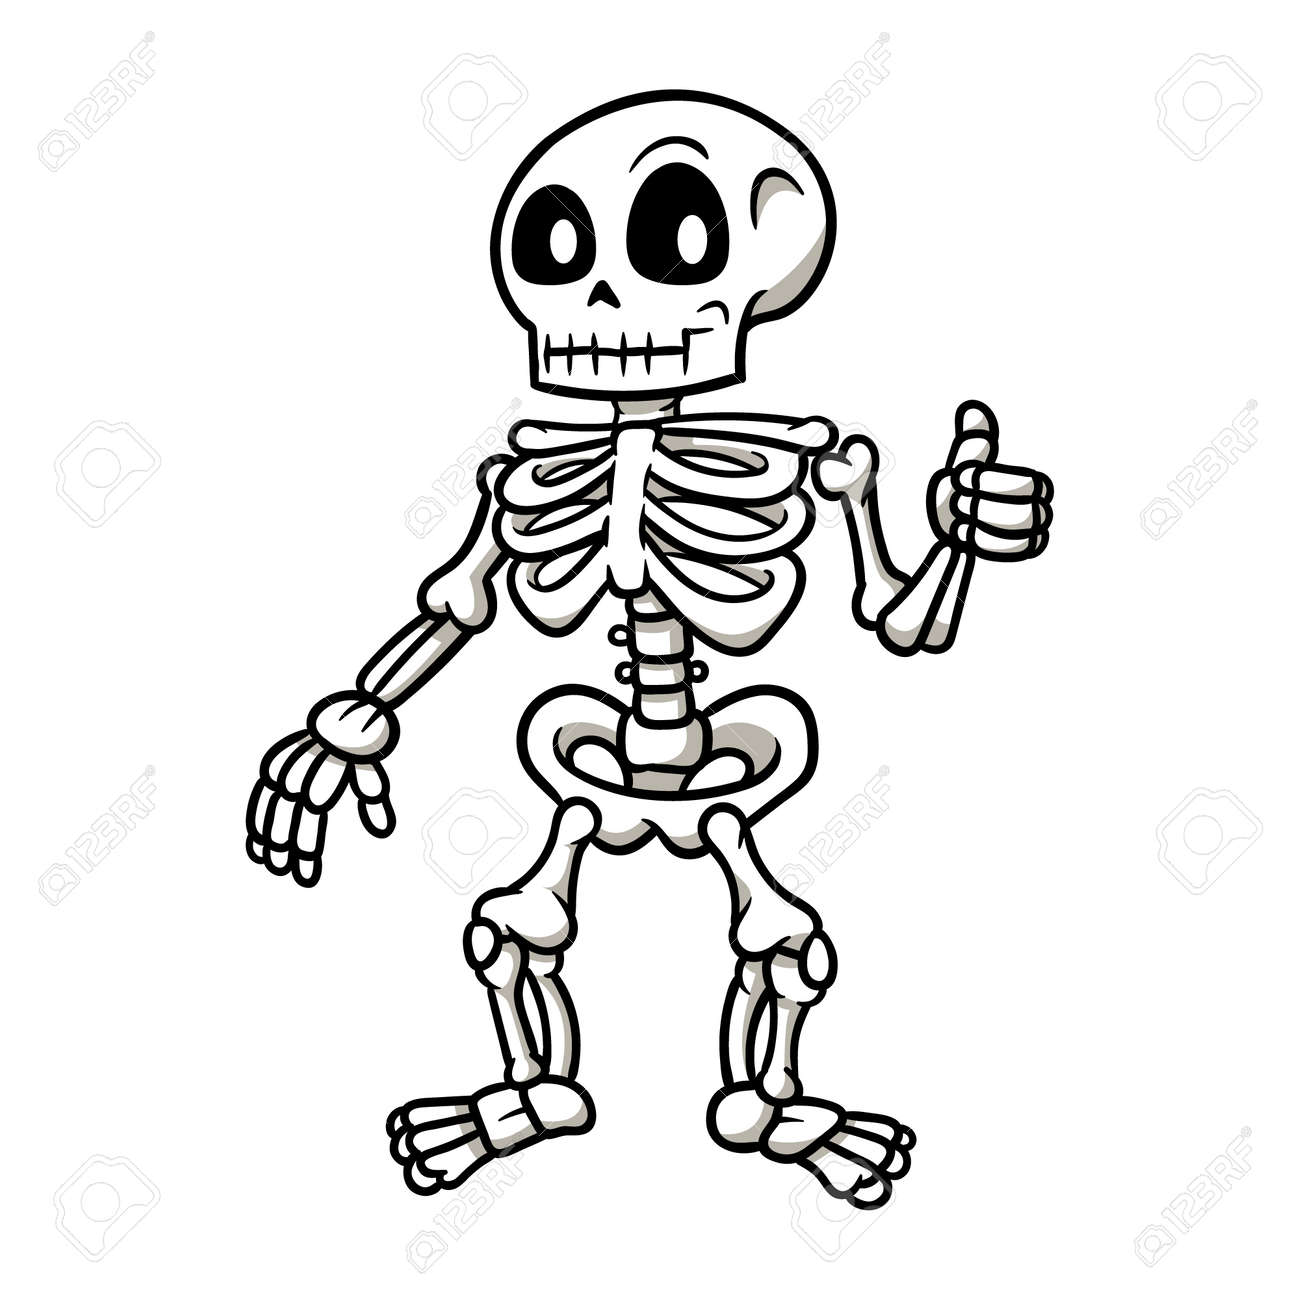 Image result for cartoon skeleton